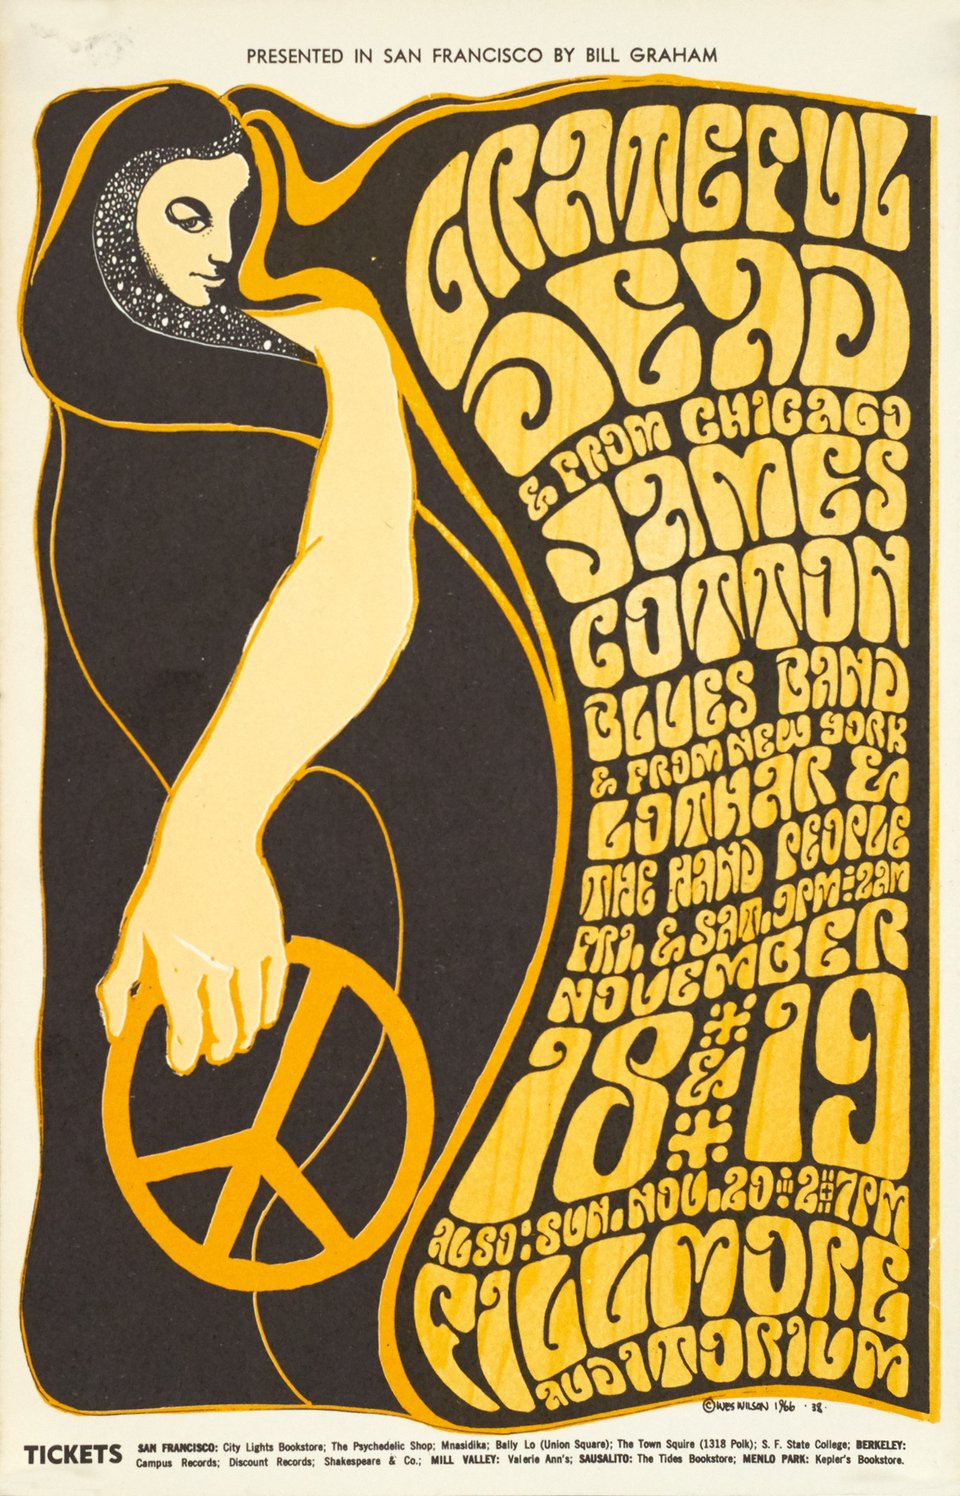 Grateful Dead at Fillmore – Affiche ancienne – Wes WILSON – 1966